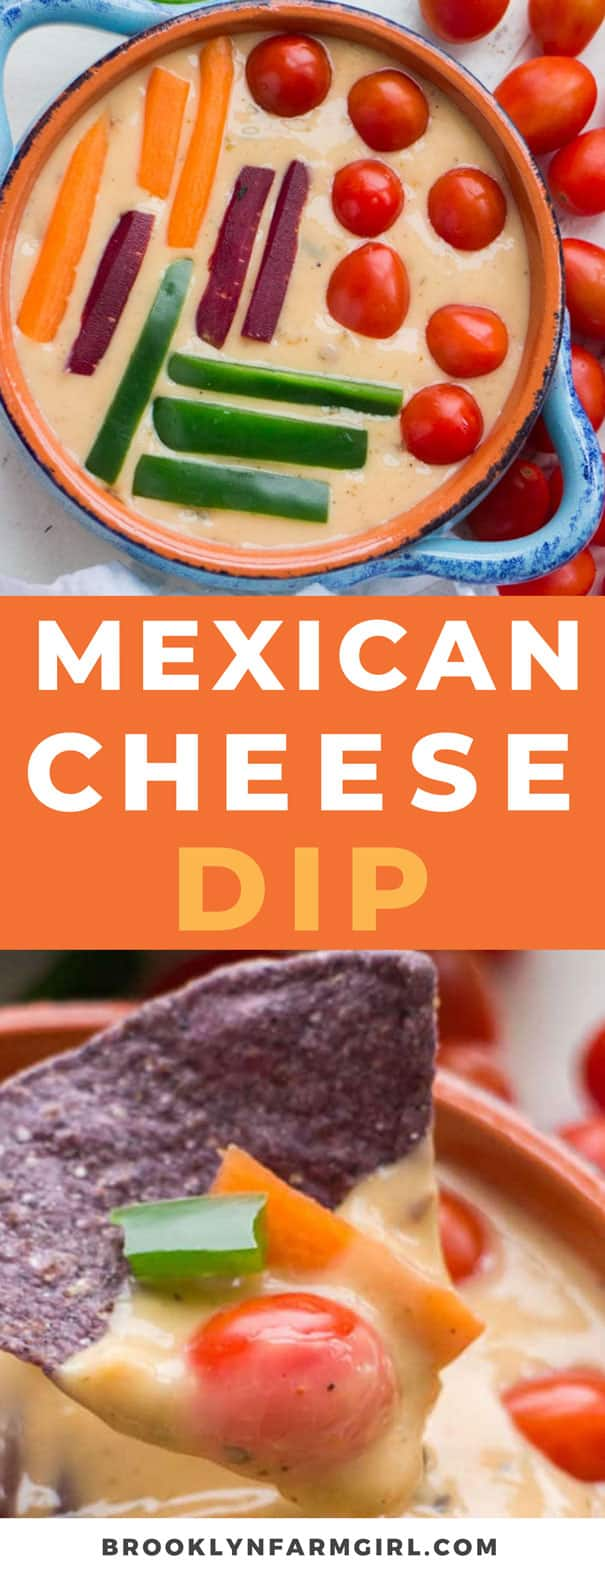 This Mexican cheese dip is a creamy and zesty blend of Monterey Jack cheese and seasonings, all melted to gooey perfection. This easy homemade cheese dip has just a handful of ingredients and can be whipped up super quick. Cover the top with chopped up vegetables for the perfect addition to any party menu!